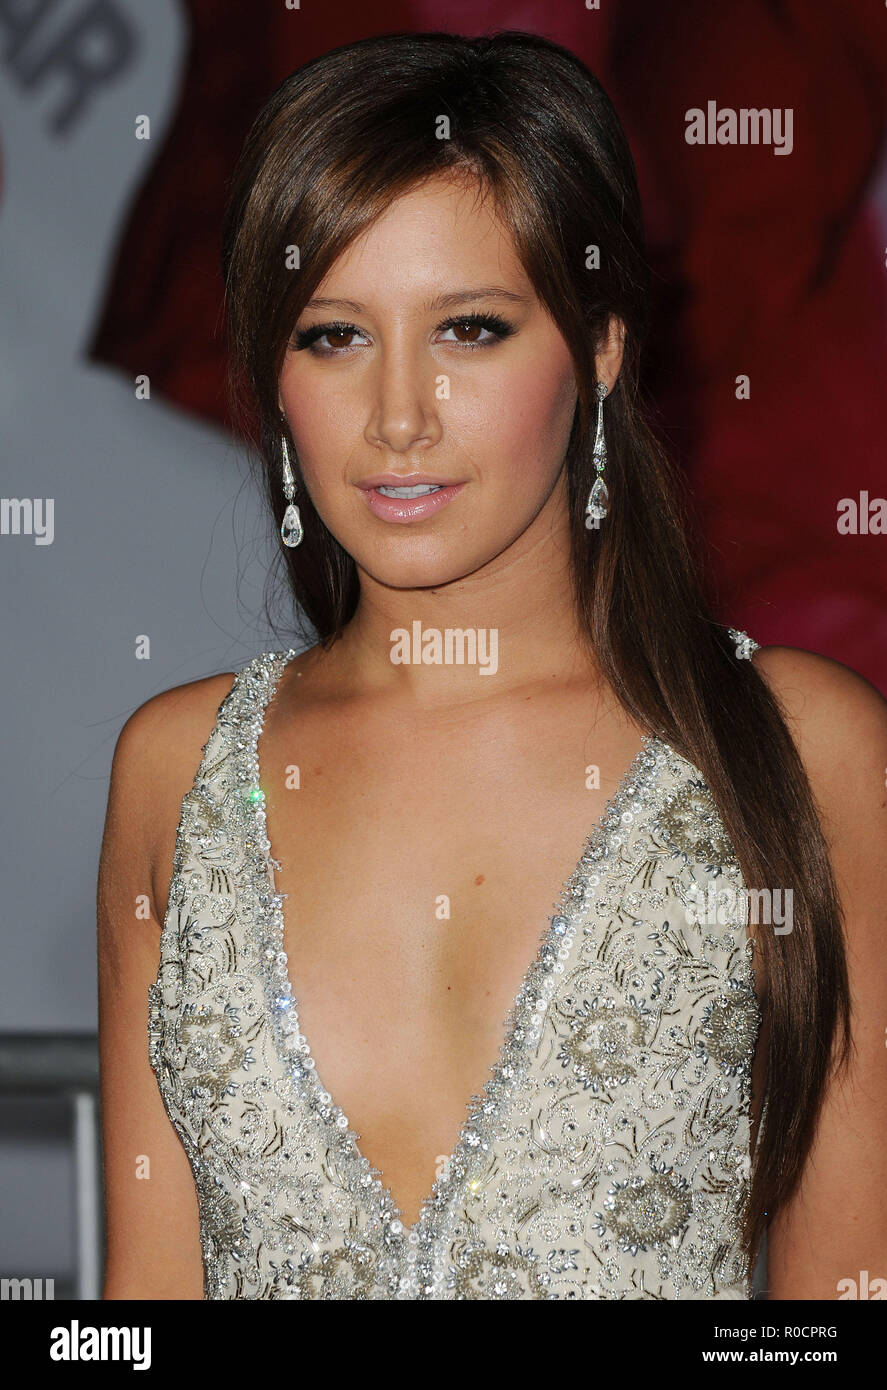 38. Ashley Tisdale